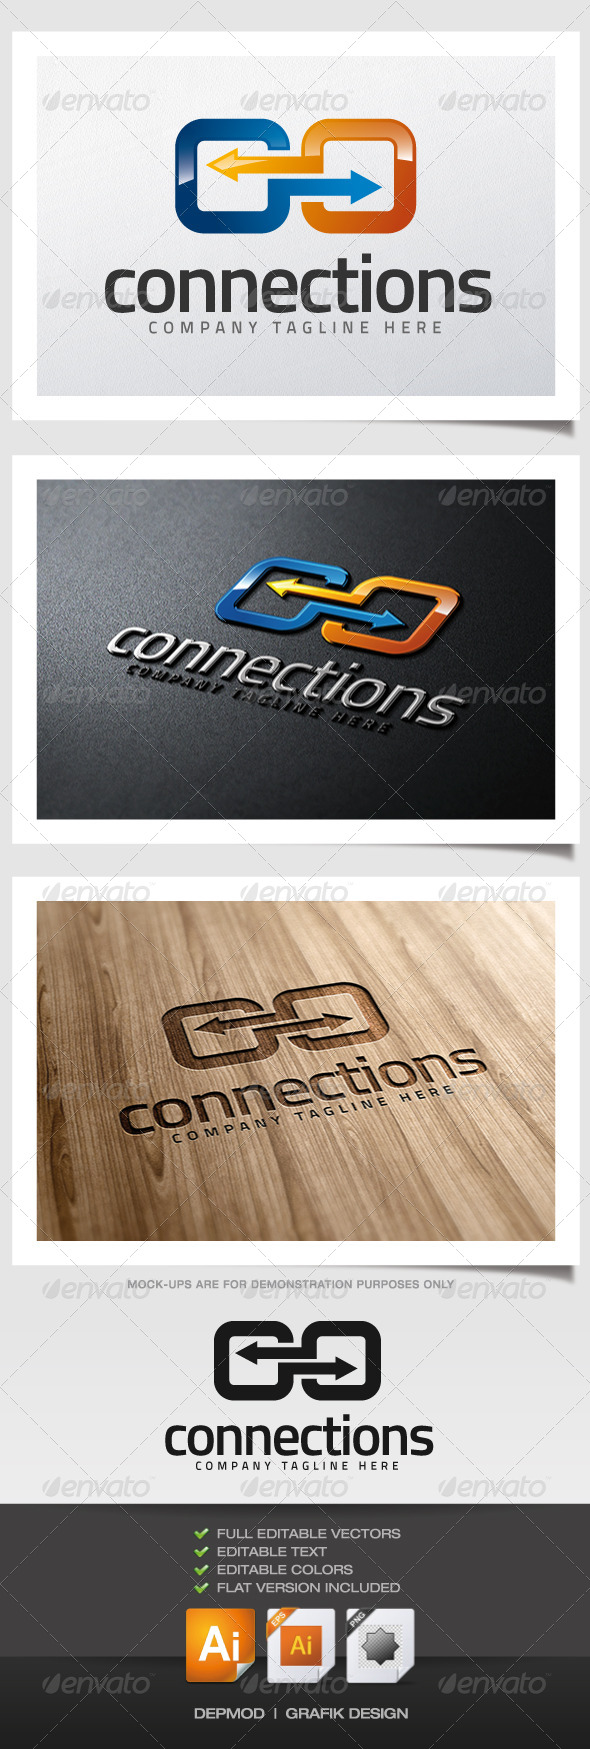 Connections Logo - Symbols Logo Templates